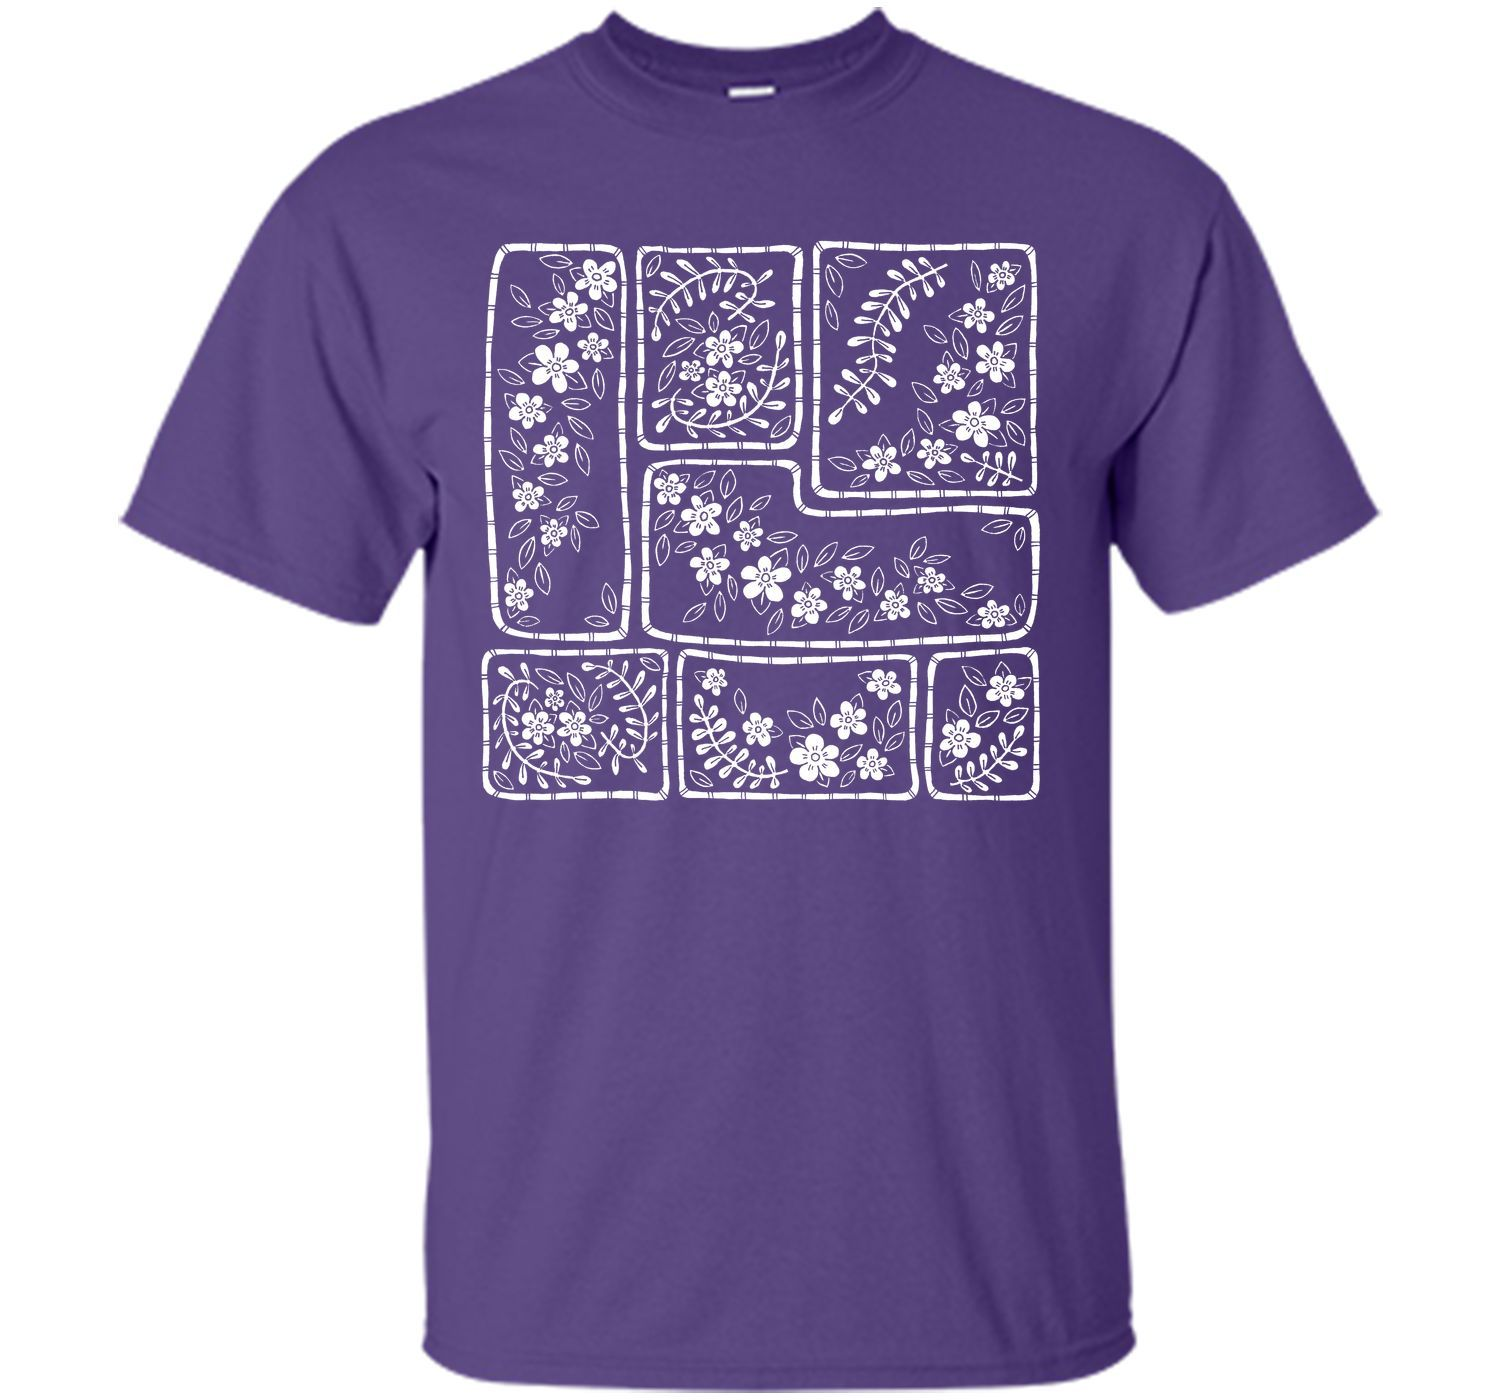 Becoming White Flowers Meaning 2017 T Shirt Products Pinterest